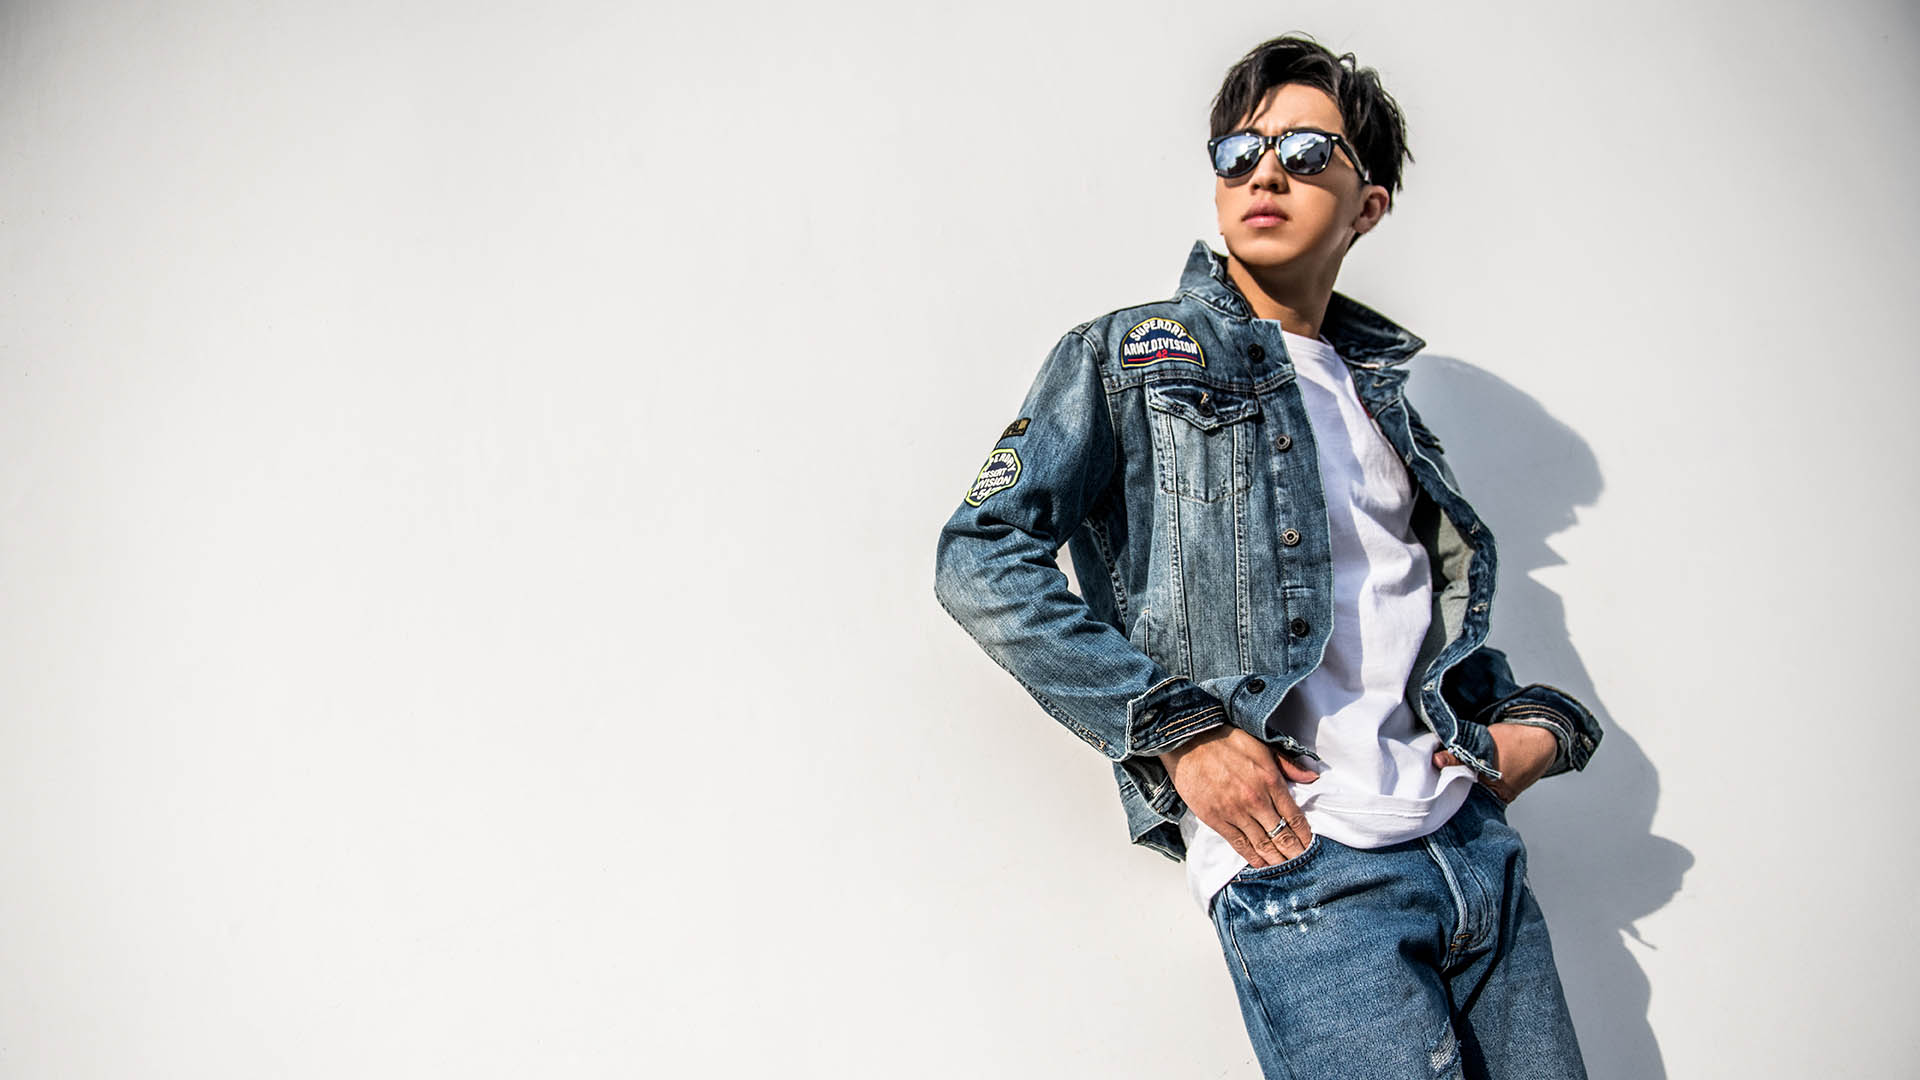 male-in-denim-leaning-against-wall.jpg